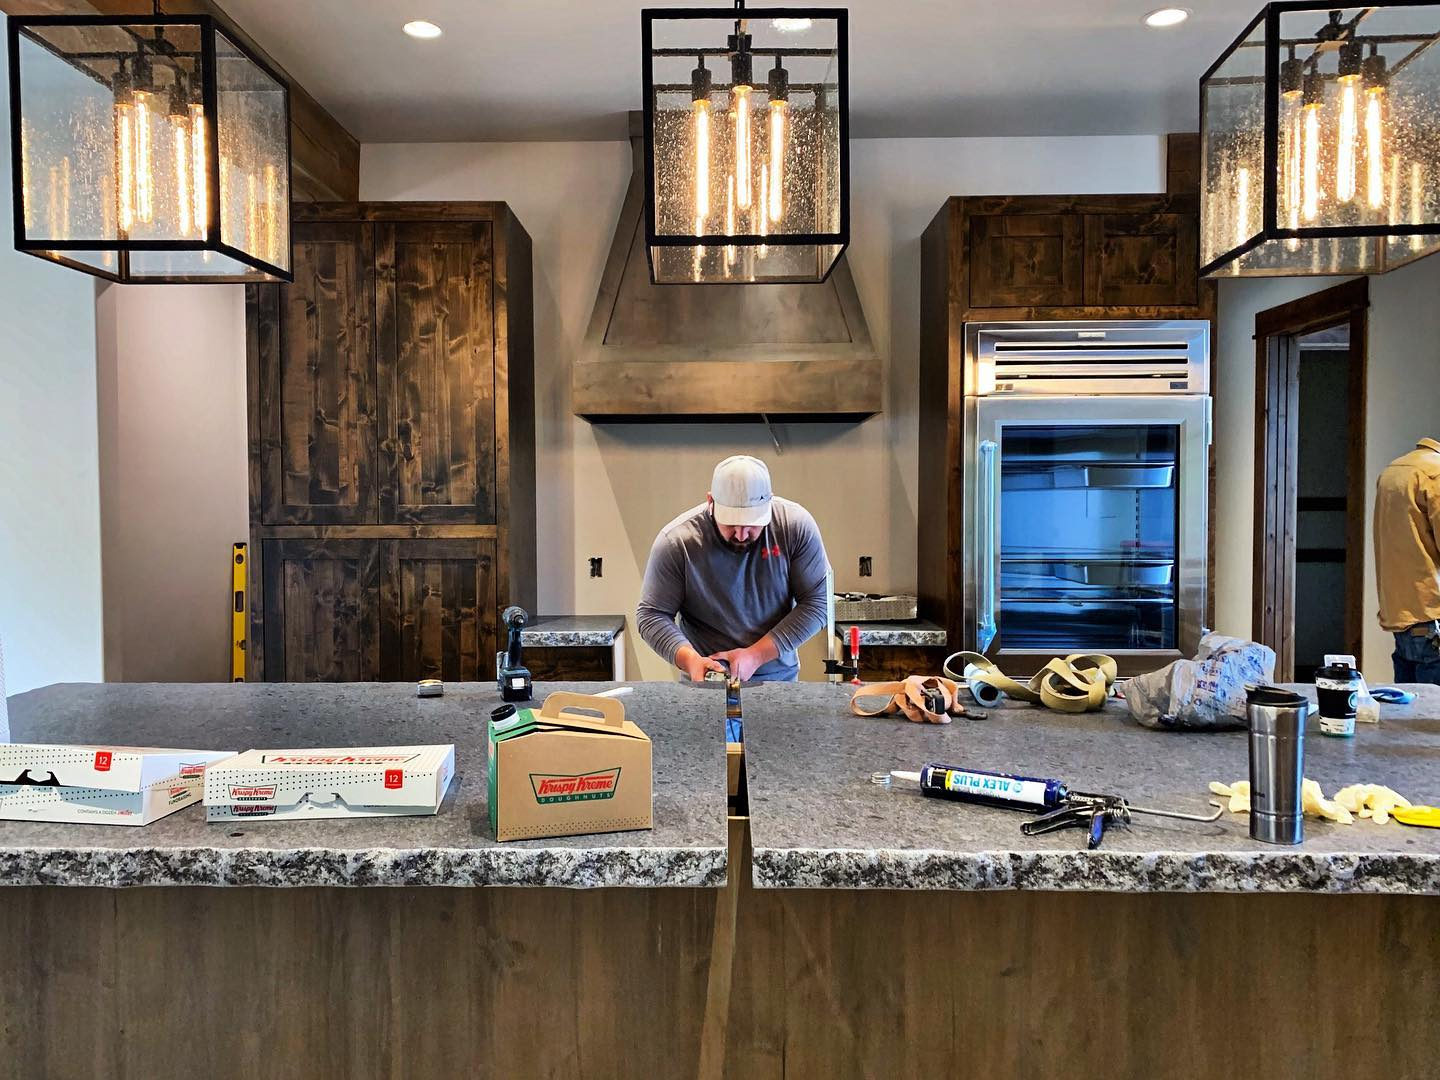 Power food and a crew that works really really hard on our awesome details. And seriously, check out this fridge!! @eashandmillerwoodworks whitefish custom home builder